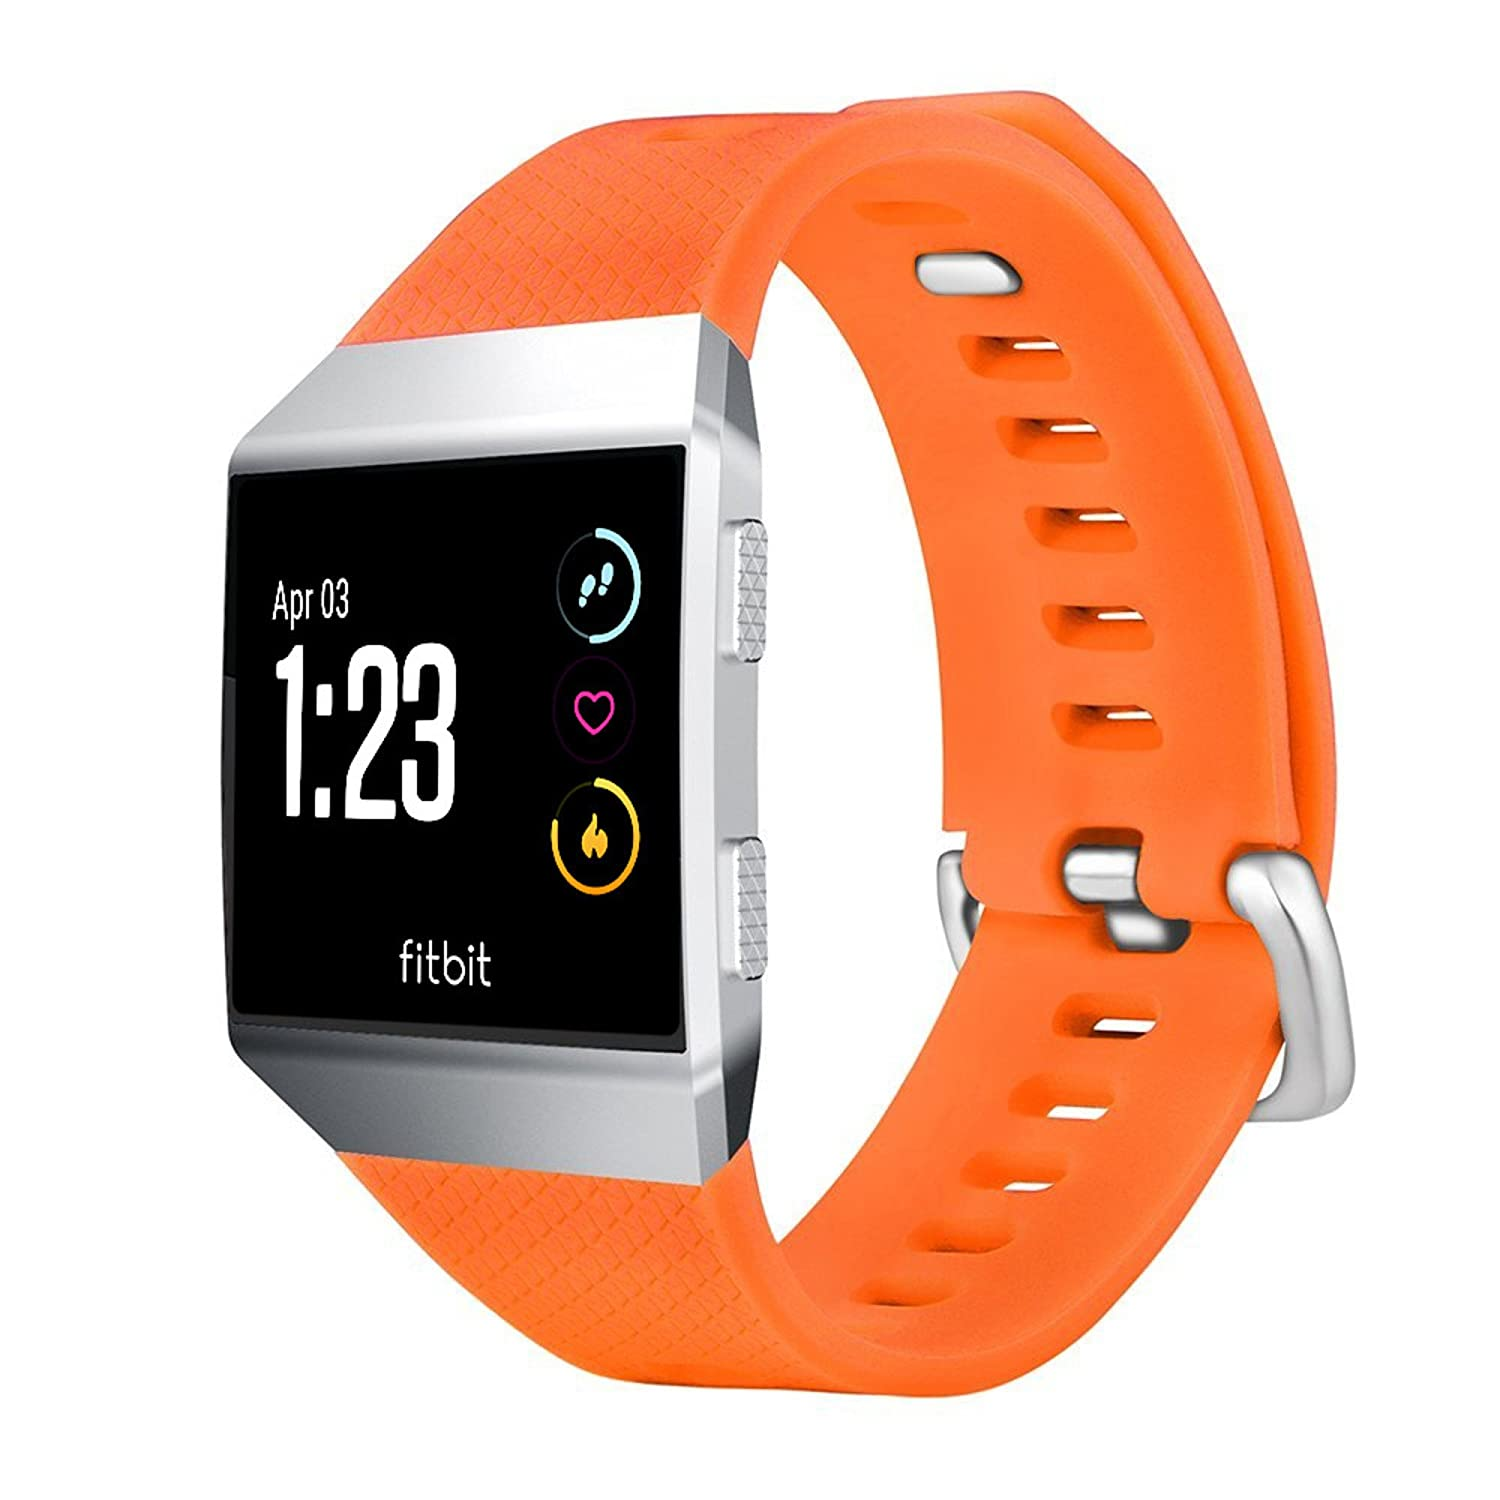 Tuff Luv Replacement Adjustable Silicone Strap Bracelet Wrist Band for Fitbit Ionic - Orange (Small) I14_70_5055261845407